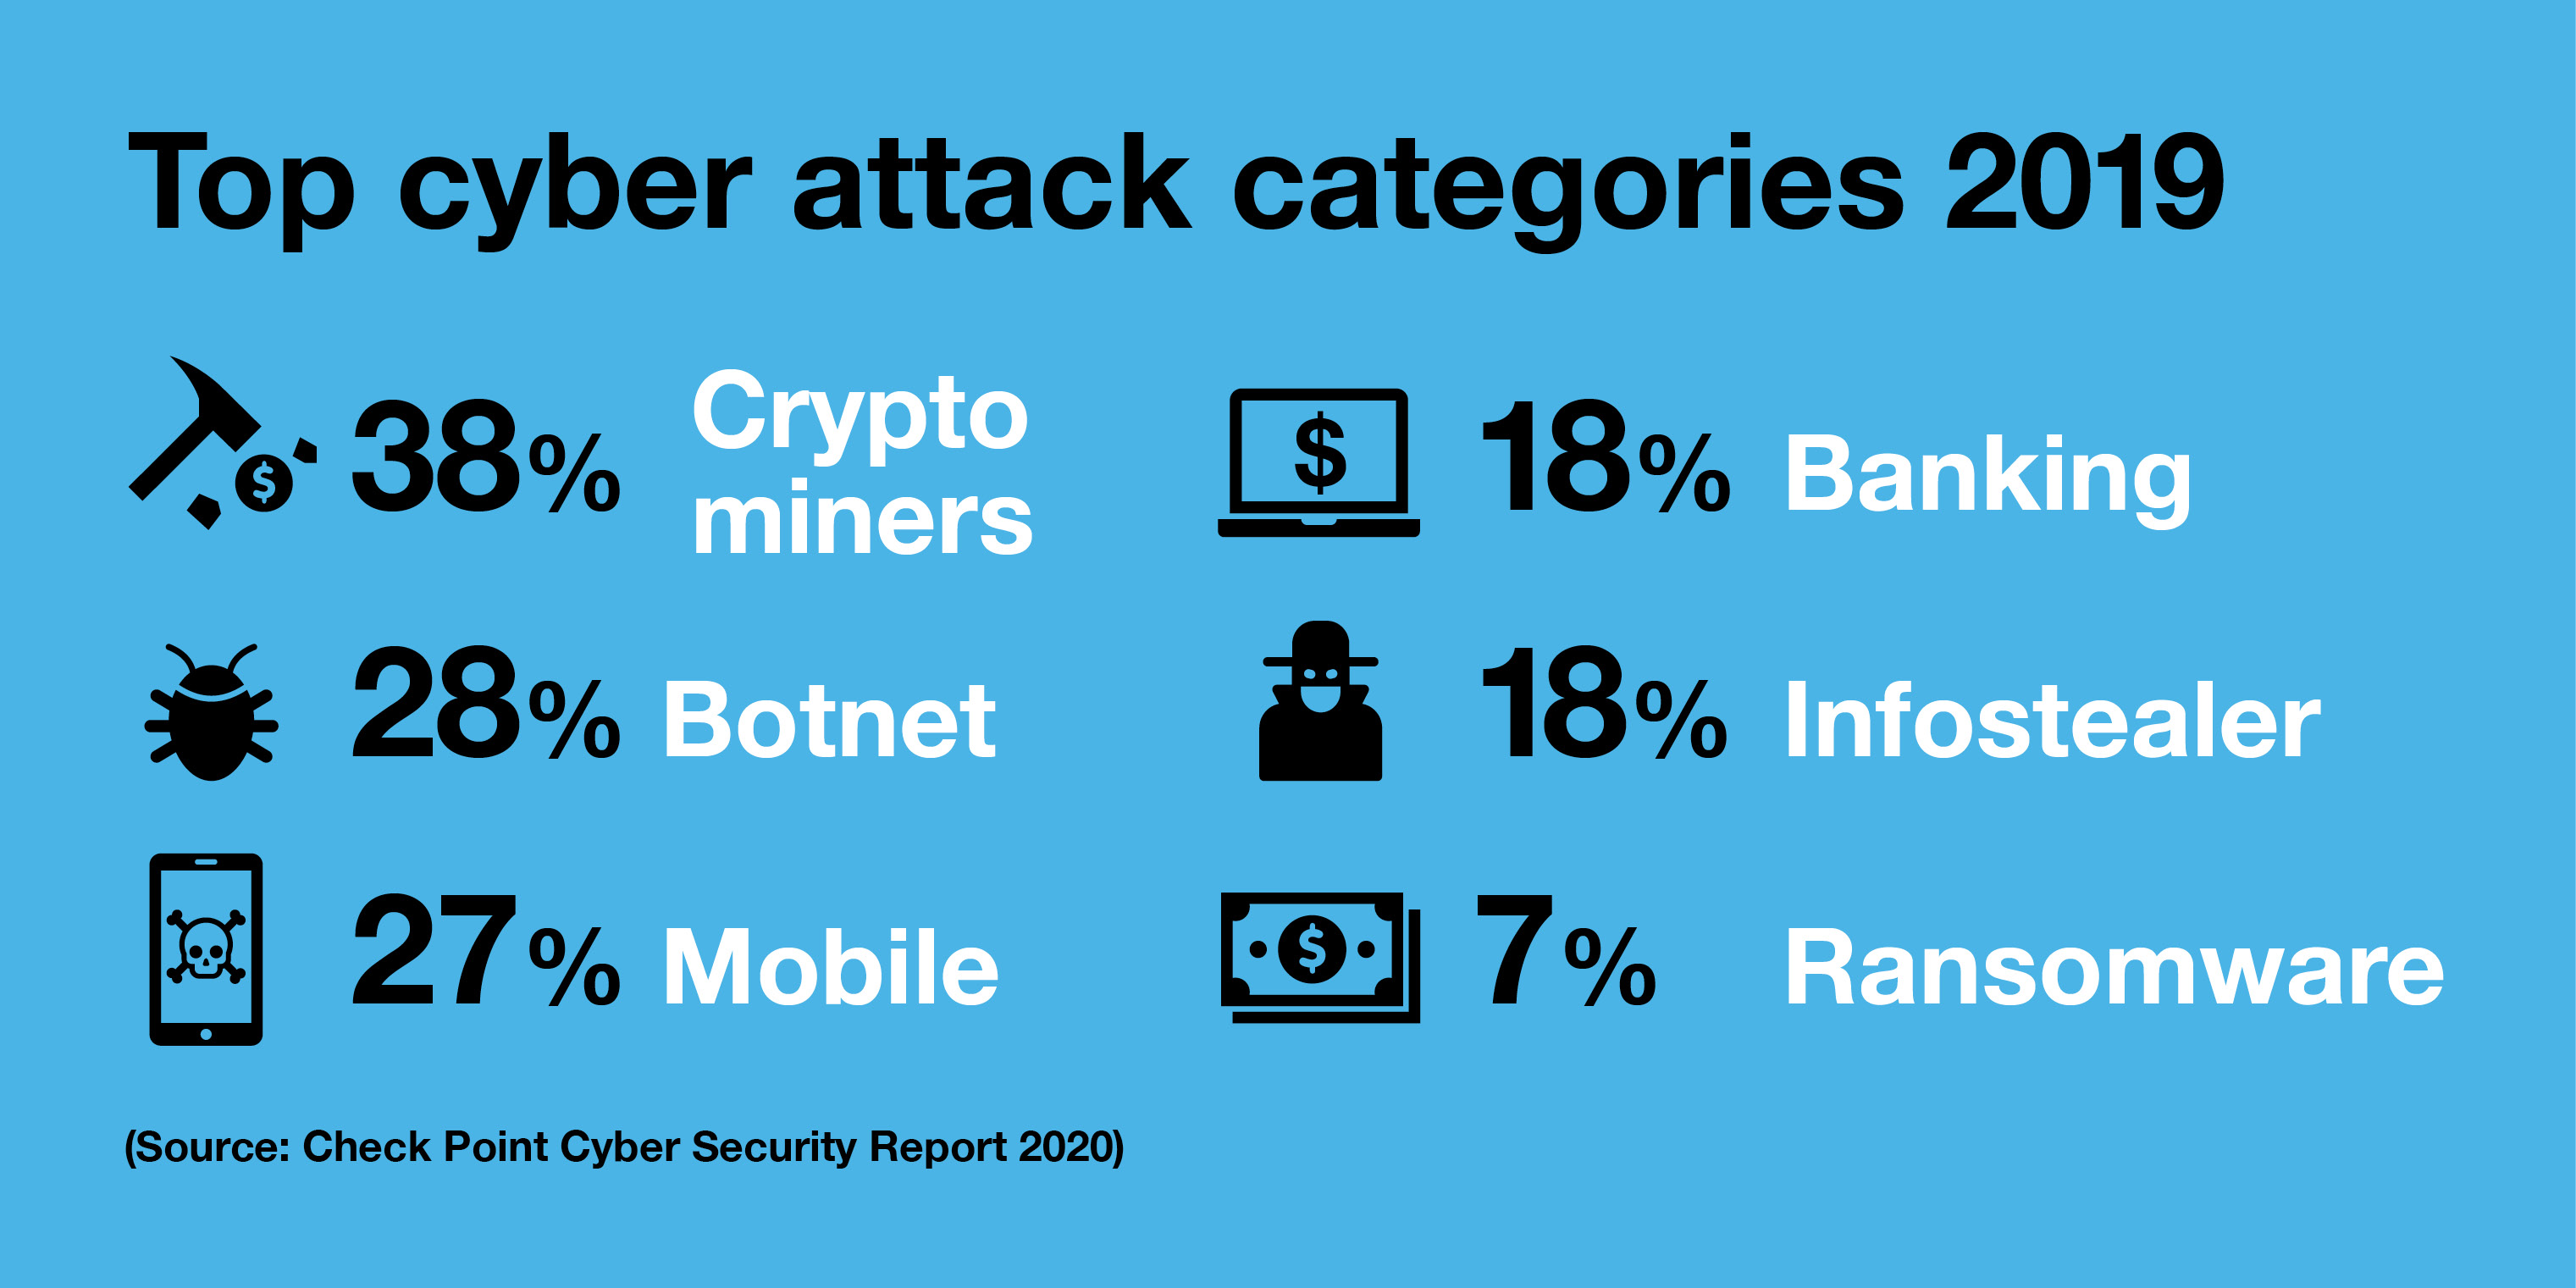 Top cyberattack categories 2019